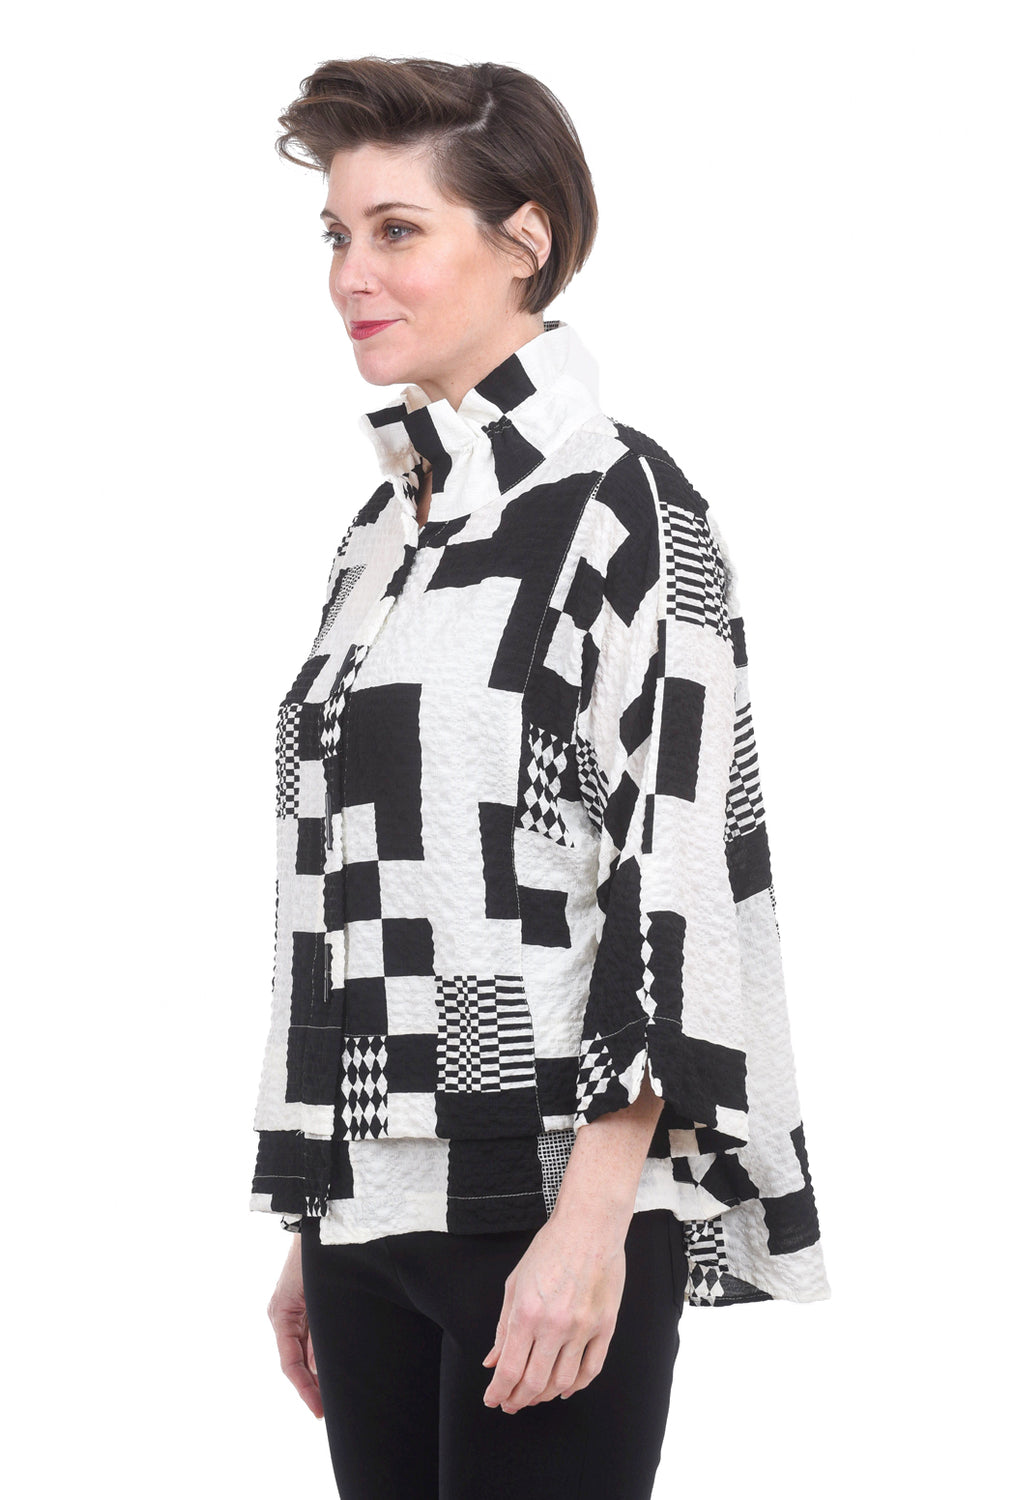 Moonlight Crinkle Blocks & Checks Blouse, White/Black